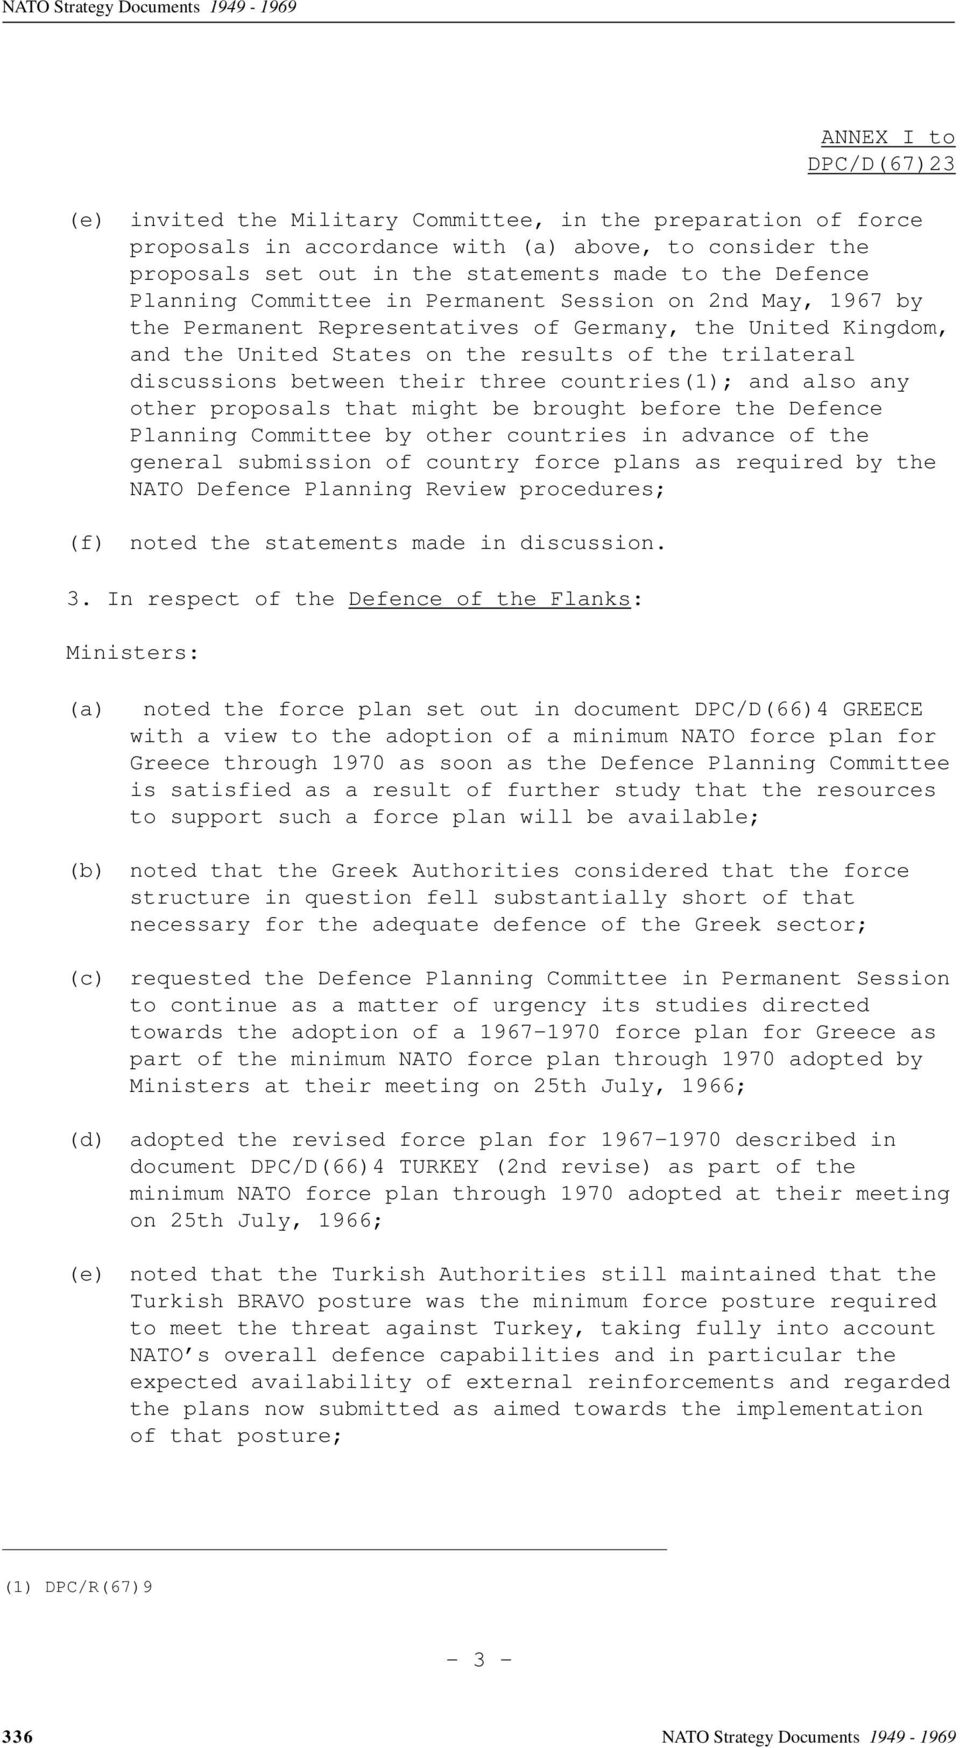 countries(1); and also any other proposals that might be brought before the Defence Planning Committee by other countries in advance of the general submission of country force plans as required by